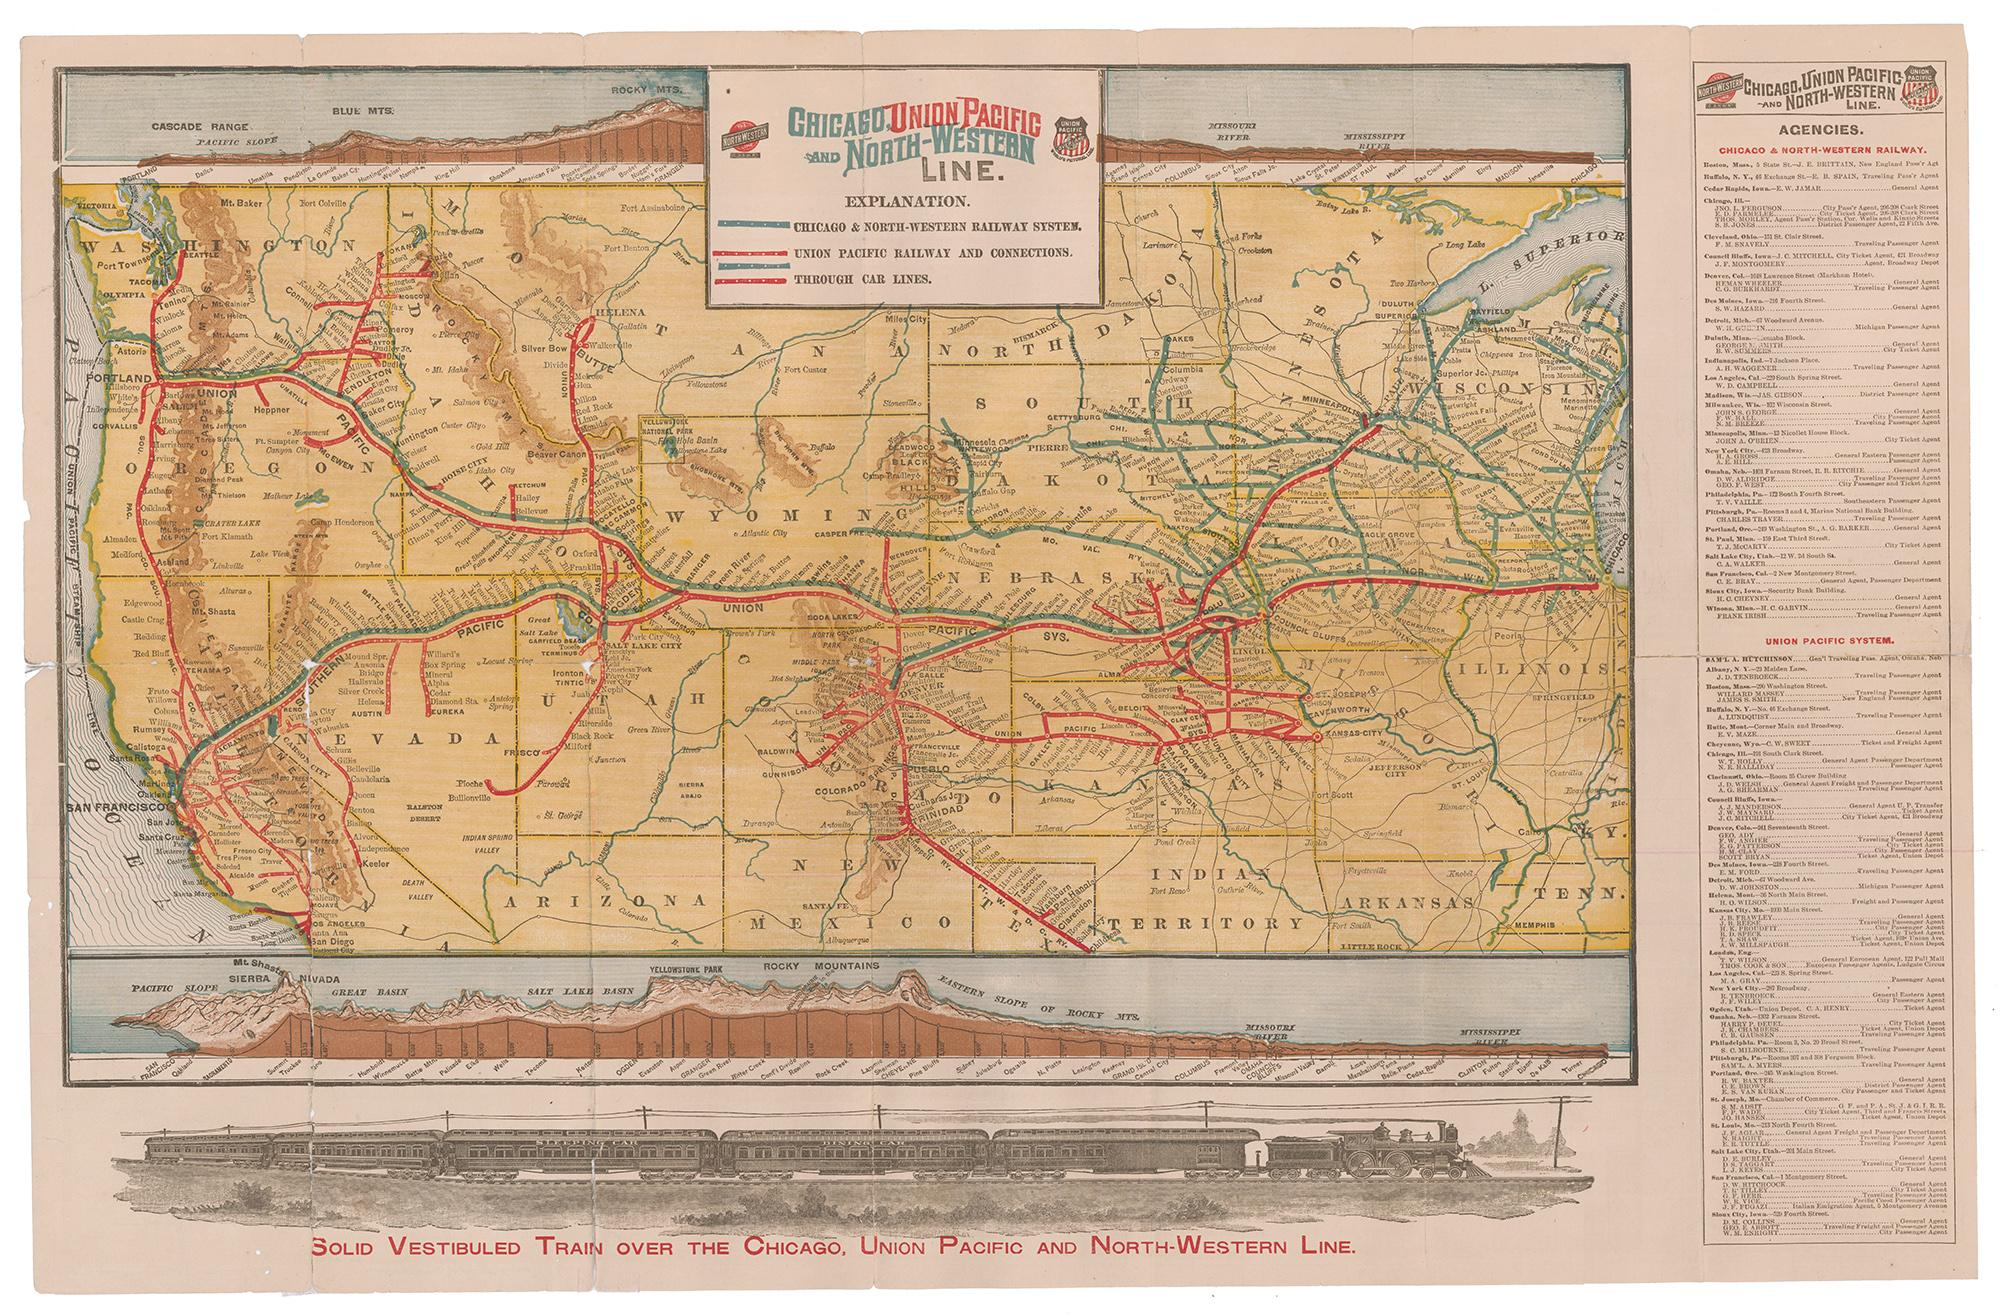 Chicago Union Pacific and North Western Line, 1894